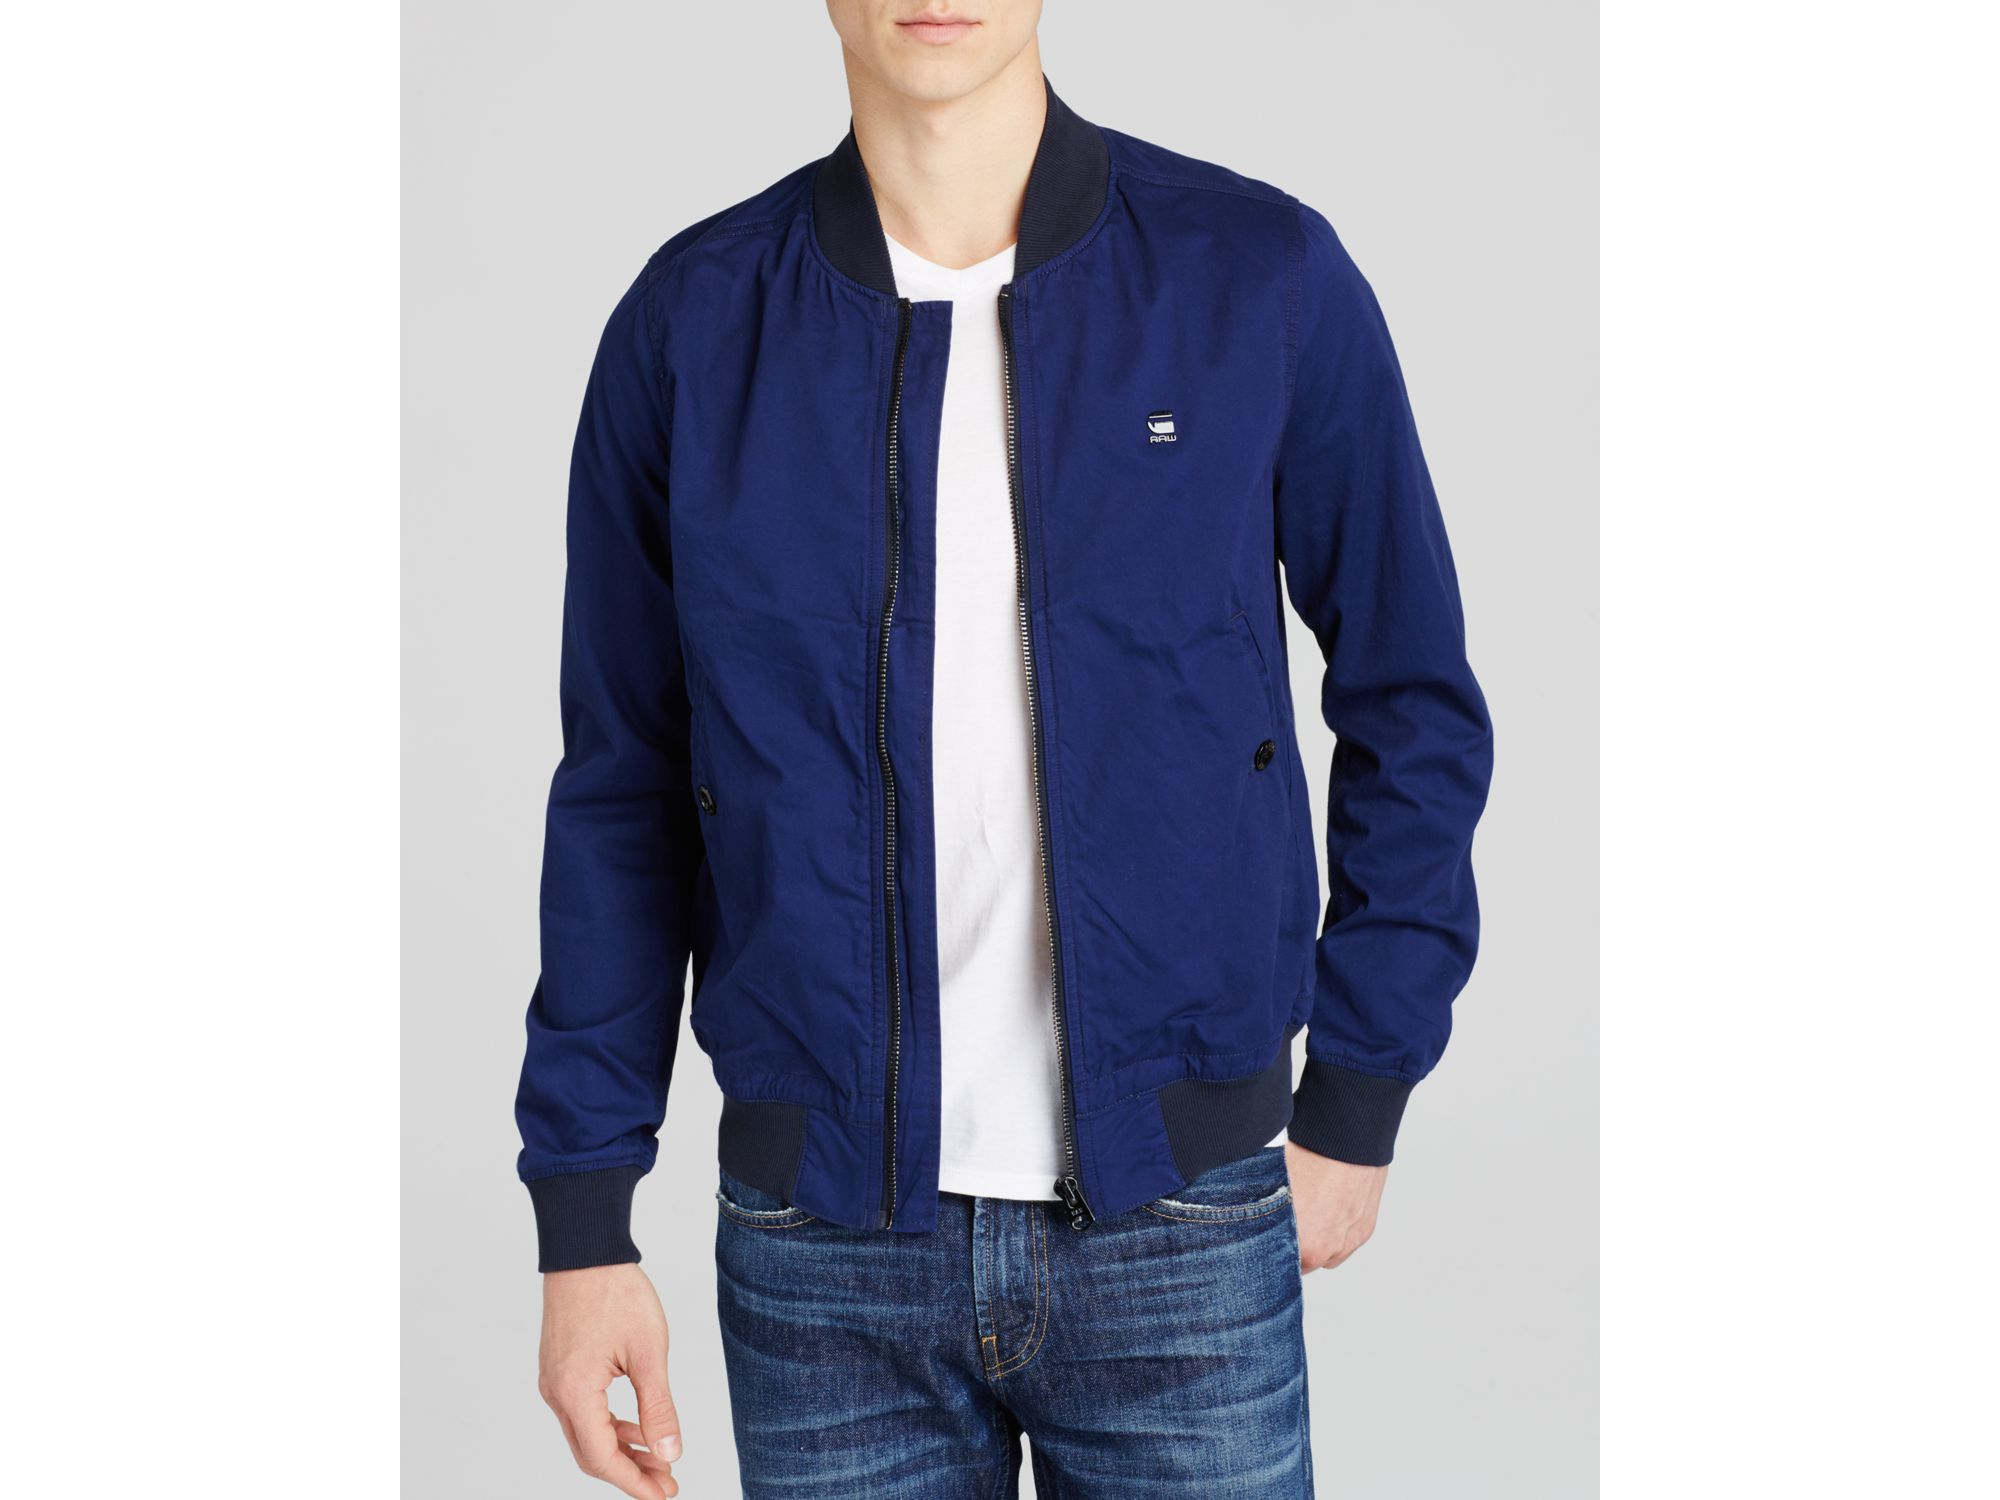 In Blue Raw Star For Lyst Bomber Jacket Shattor Men G c0wq7qEY